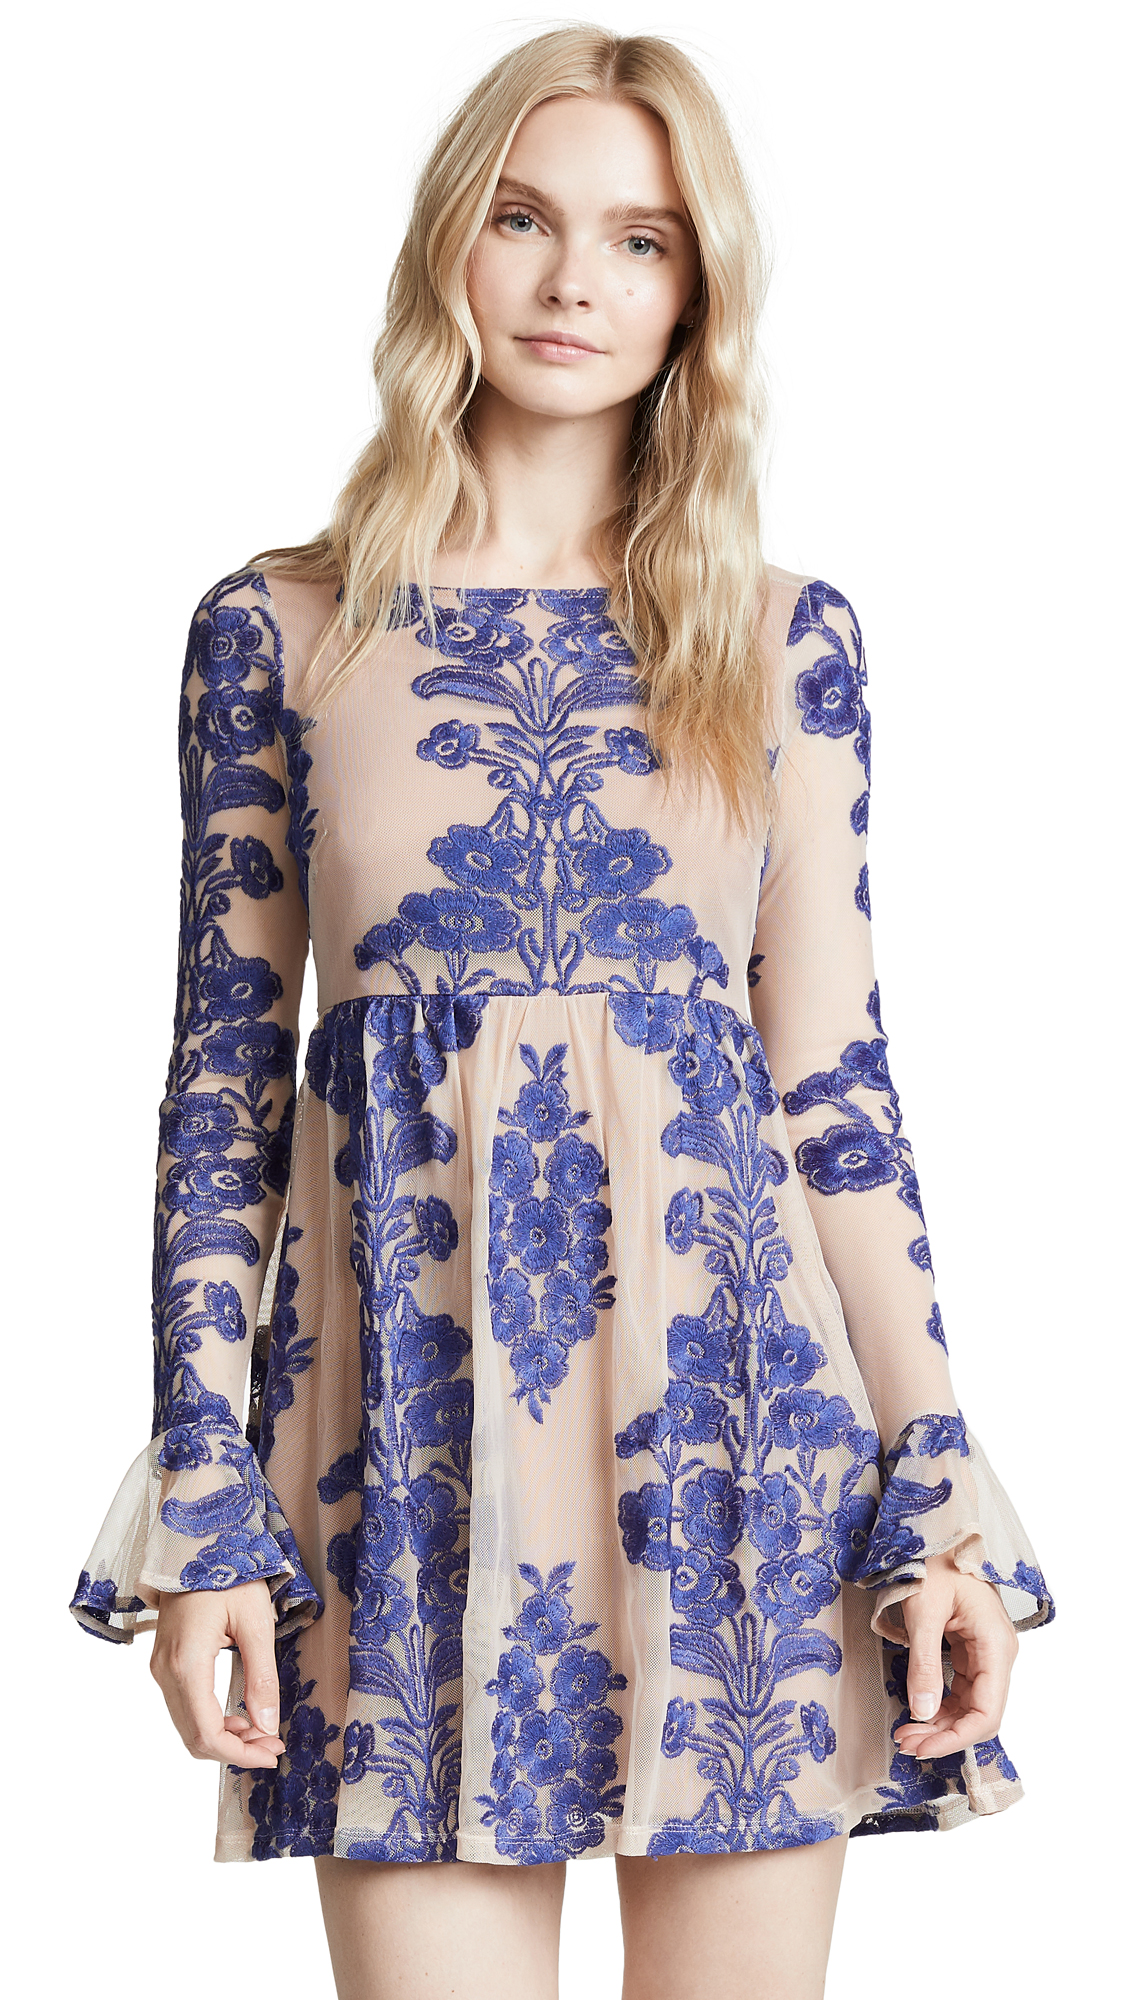 For Love & Lemons Temecula Mini Dress - Navy